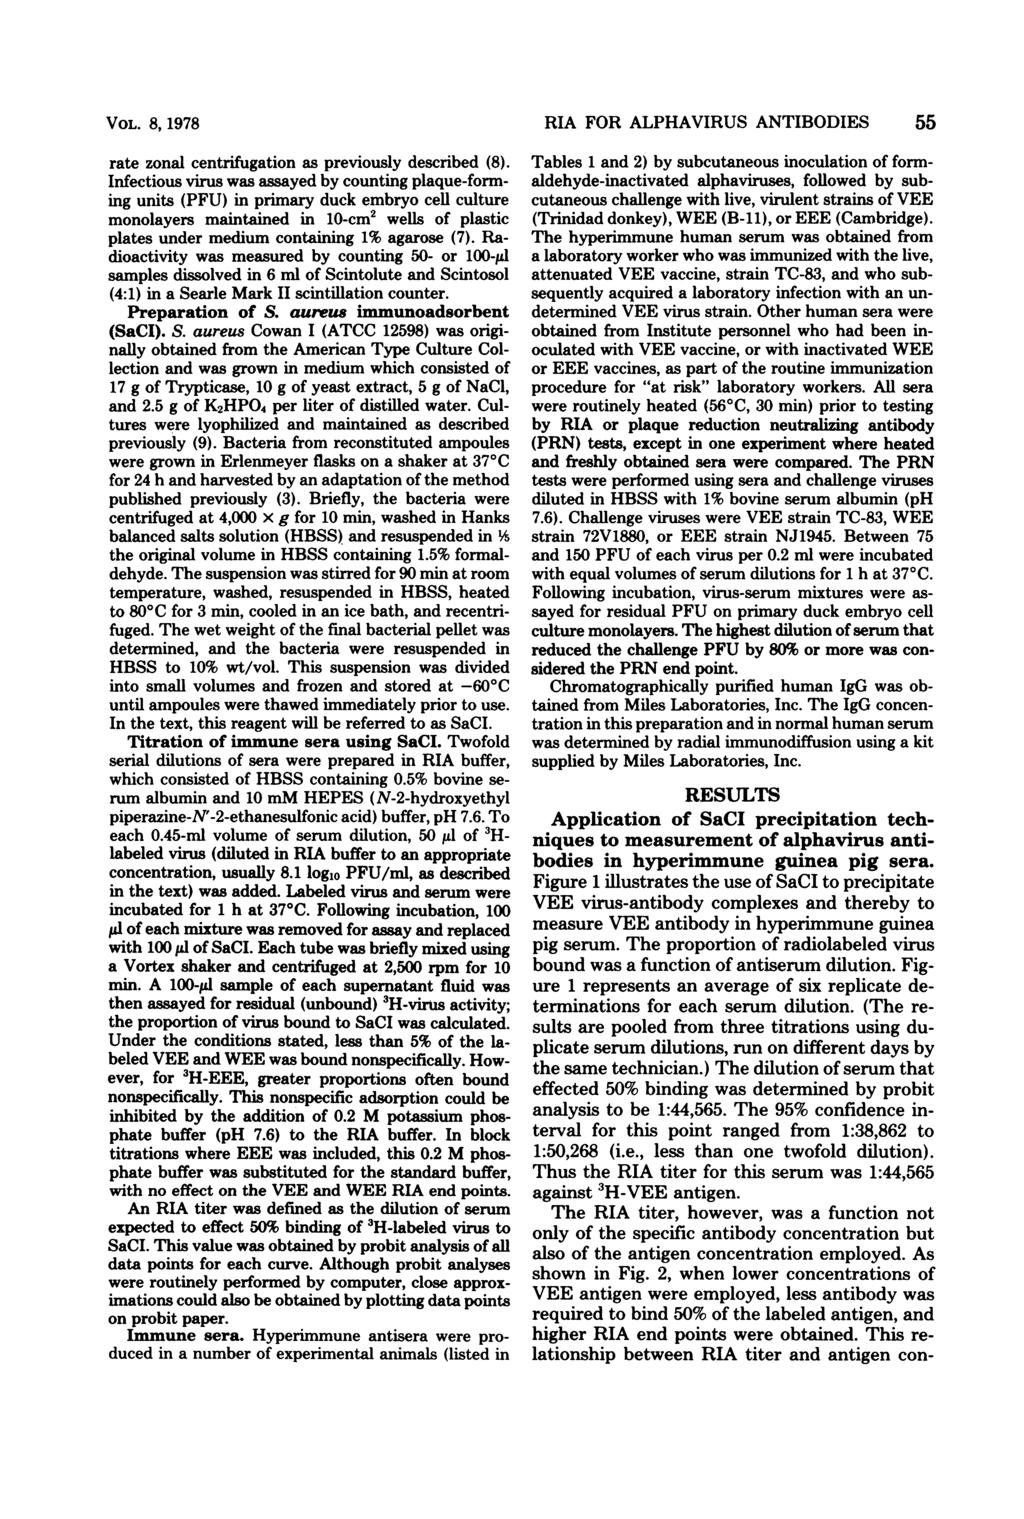 VOL. 8, 978 rate zonai centrifugation as previously described (8).